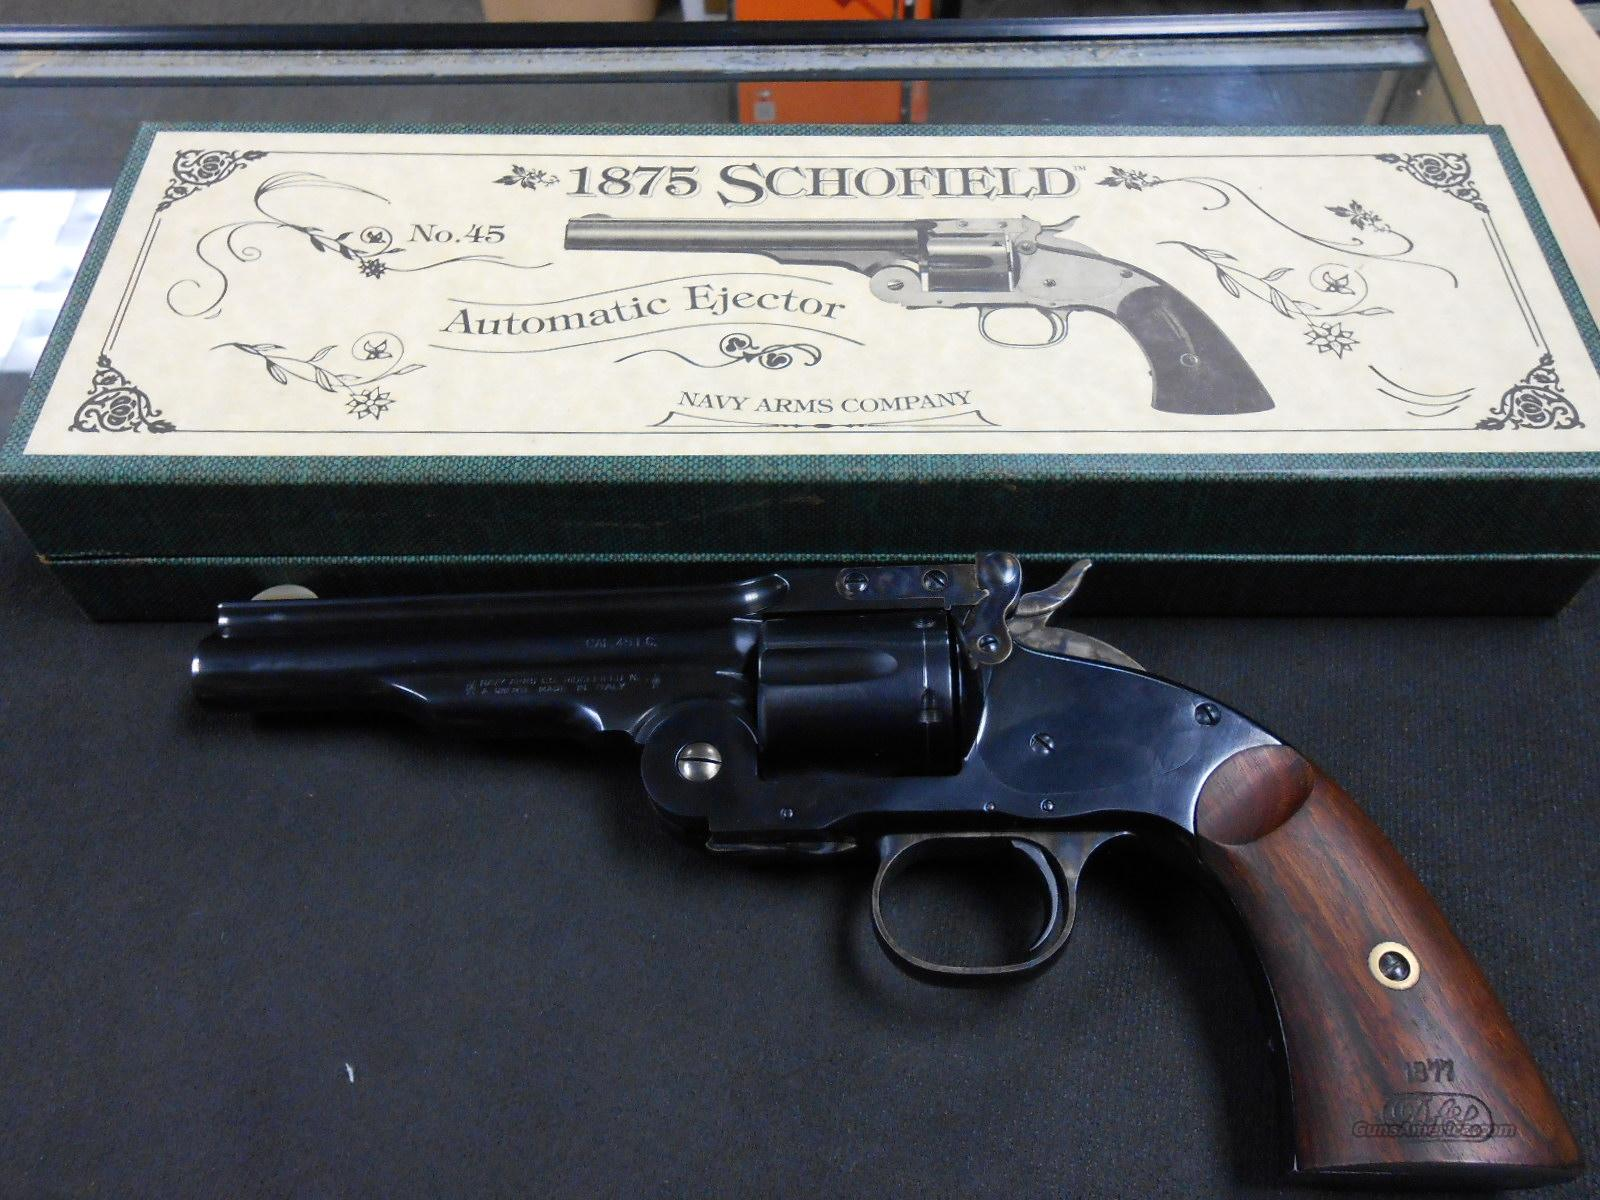 Navy Arms Used 1875 Schofield 45colt W/Box!  Guns > Pistols > Navy Arms Pistols